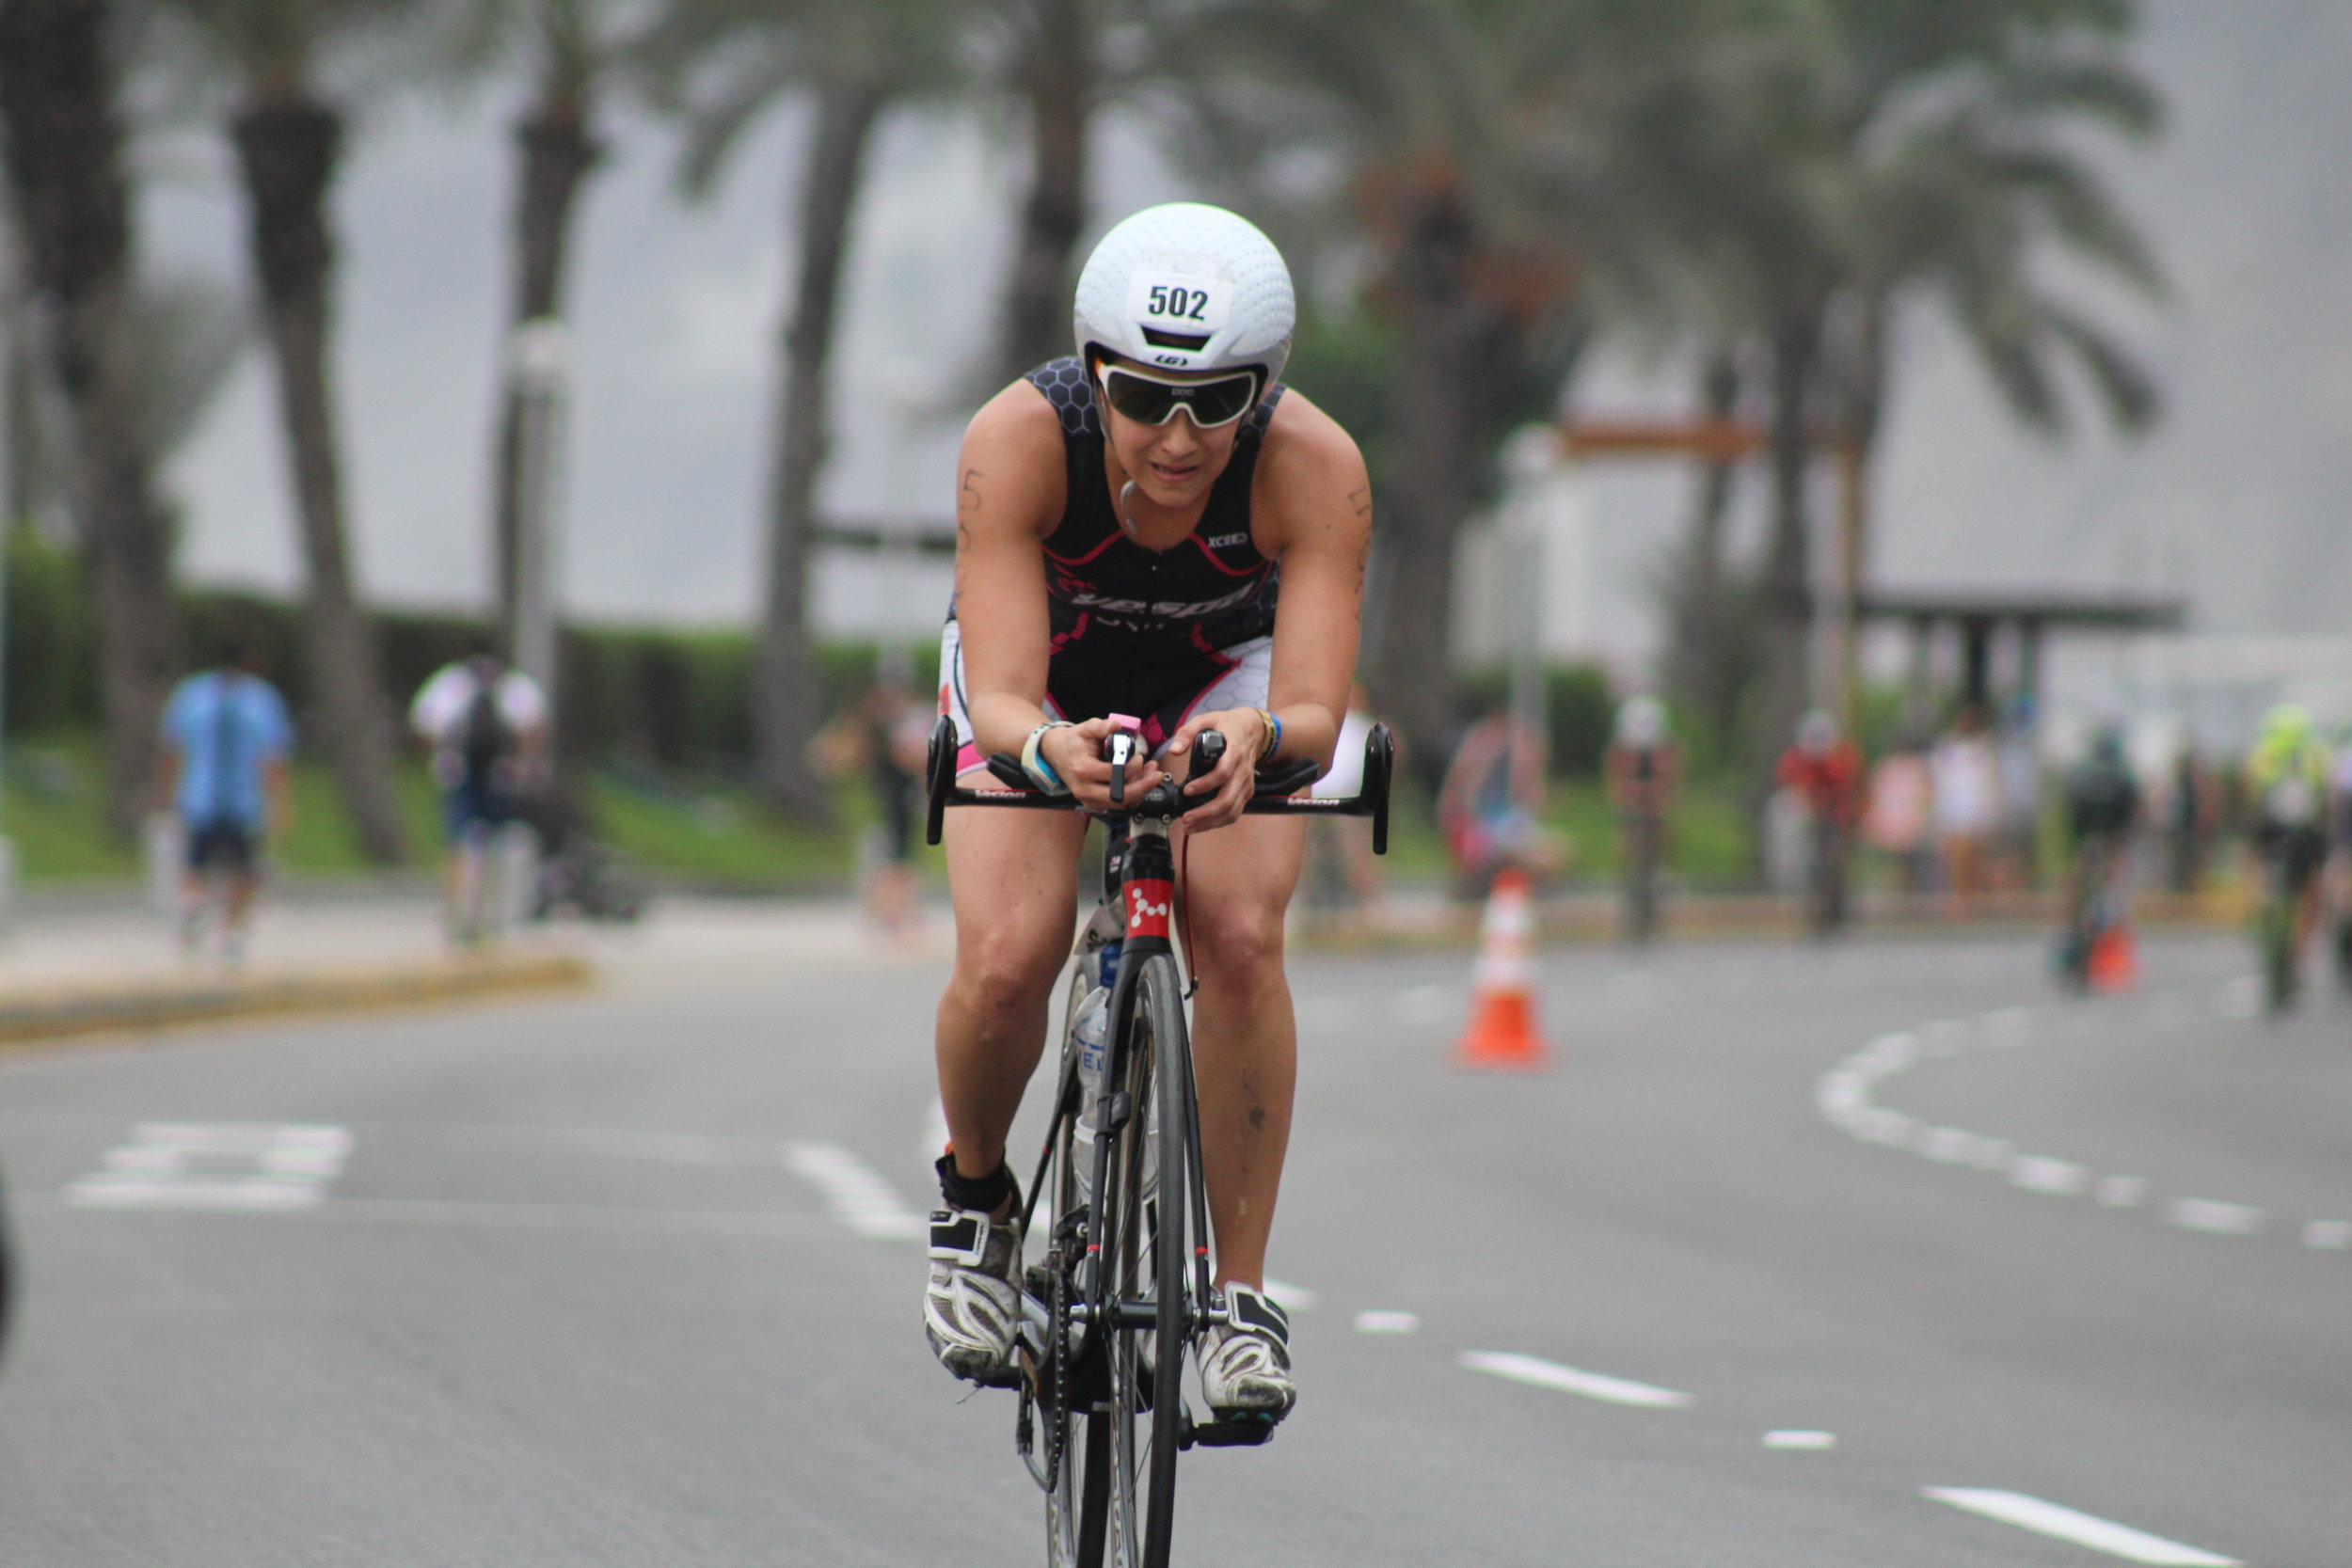 TriSTART Program - Intro to Triathlon for beginners. Come and learn all about the sport of Triathlon, in a fun and exciting environment.March 5th - May 2nd,2019 Commonwealth Pool